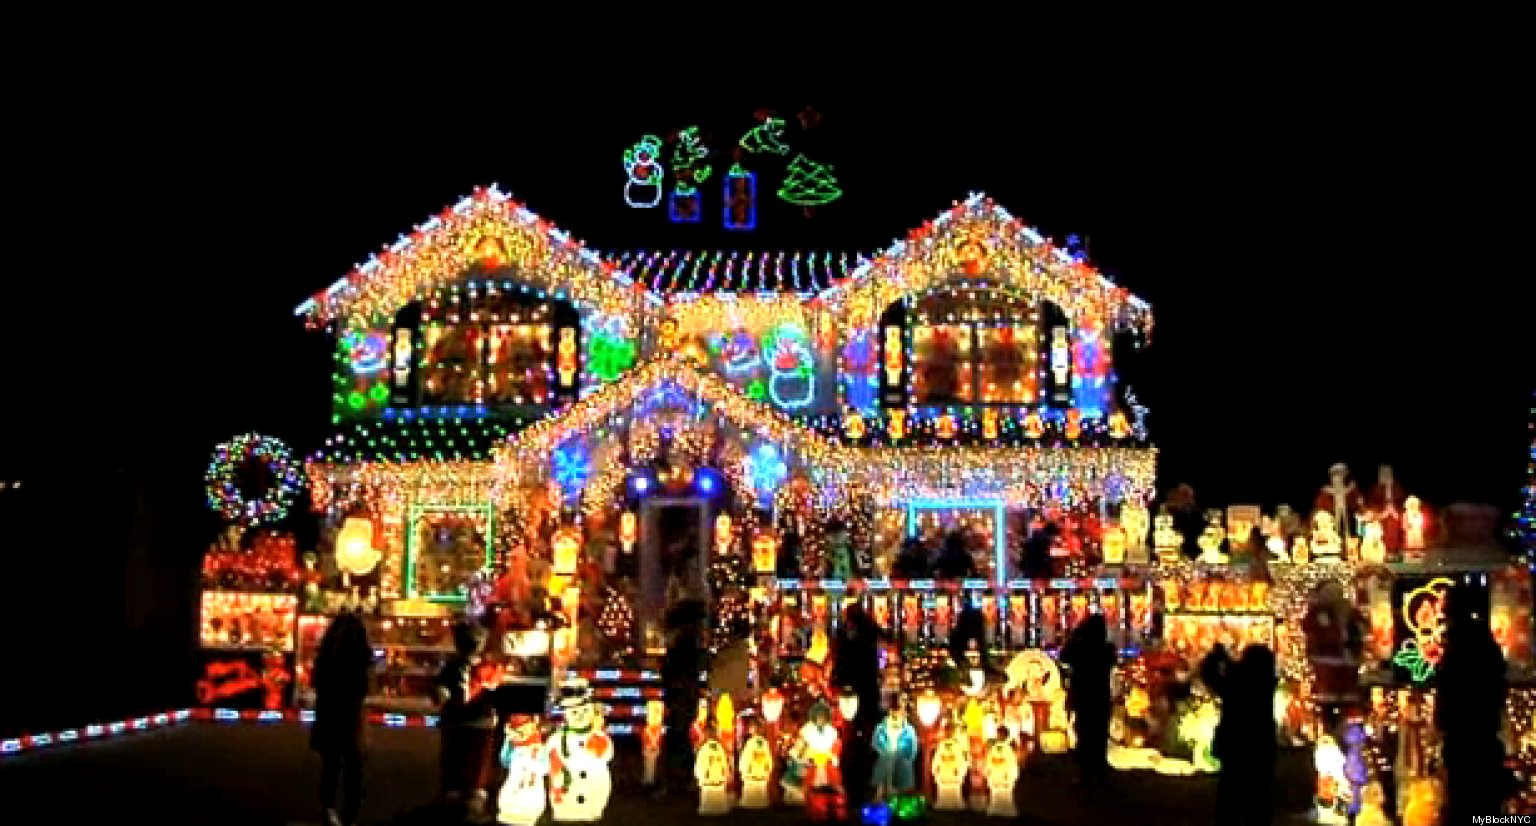 The brightest christmas house in nyc myblocknyc visits Holiday decorated homes